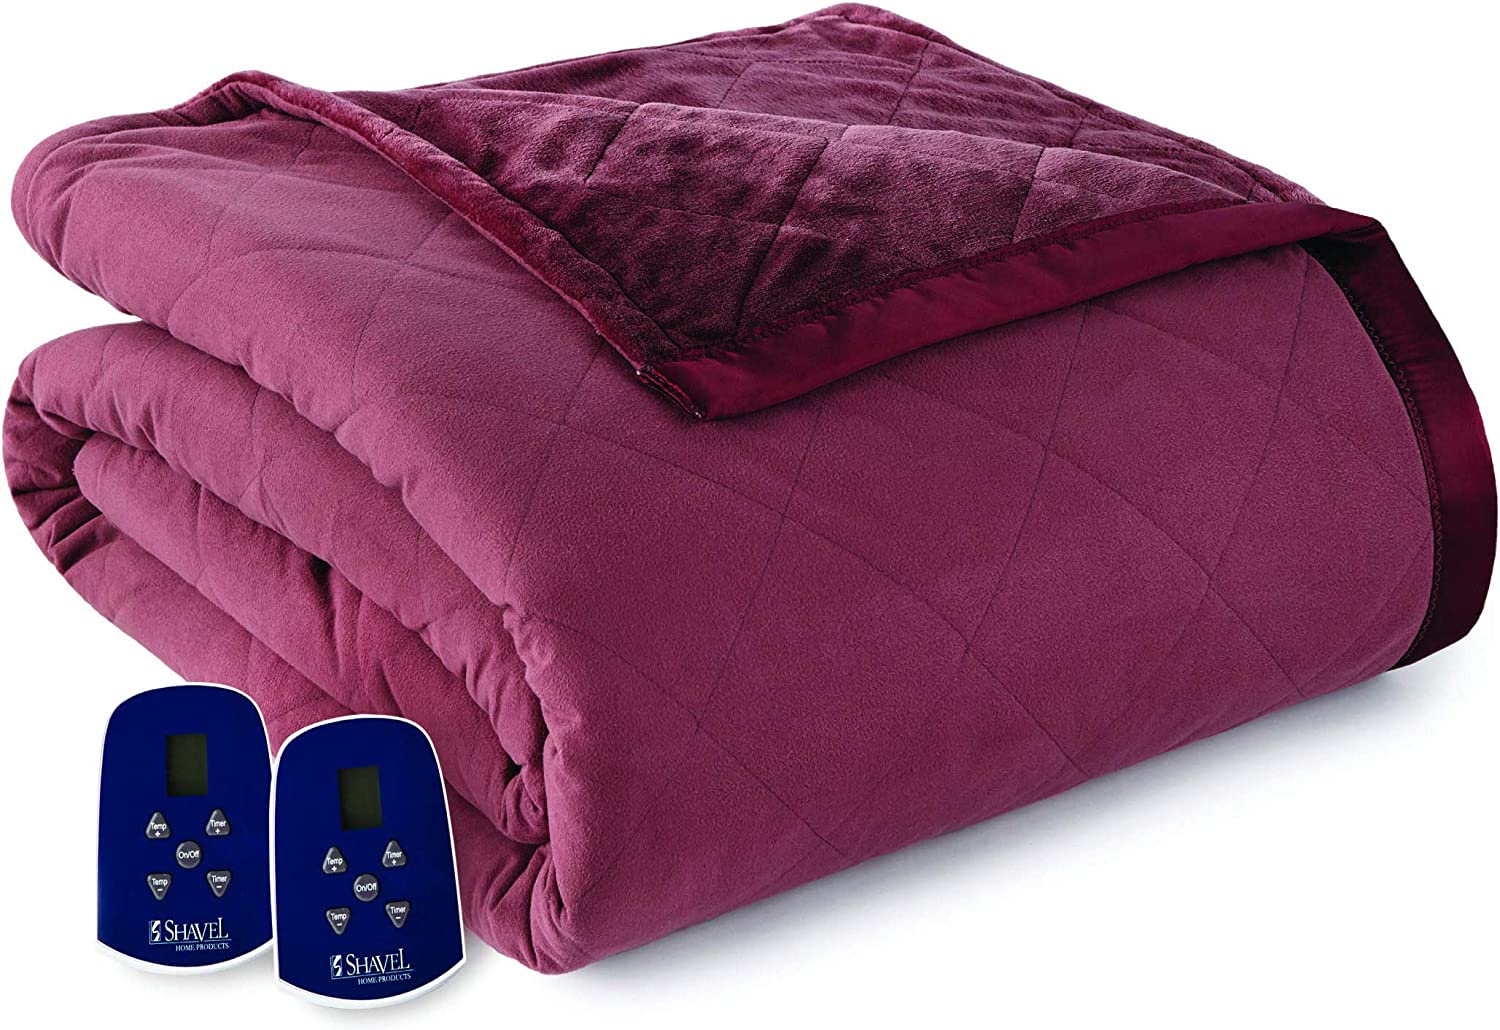 Thermee Micro Flannel Micro Flannel Electric Blanket, Full, Sangria